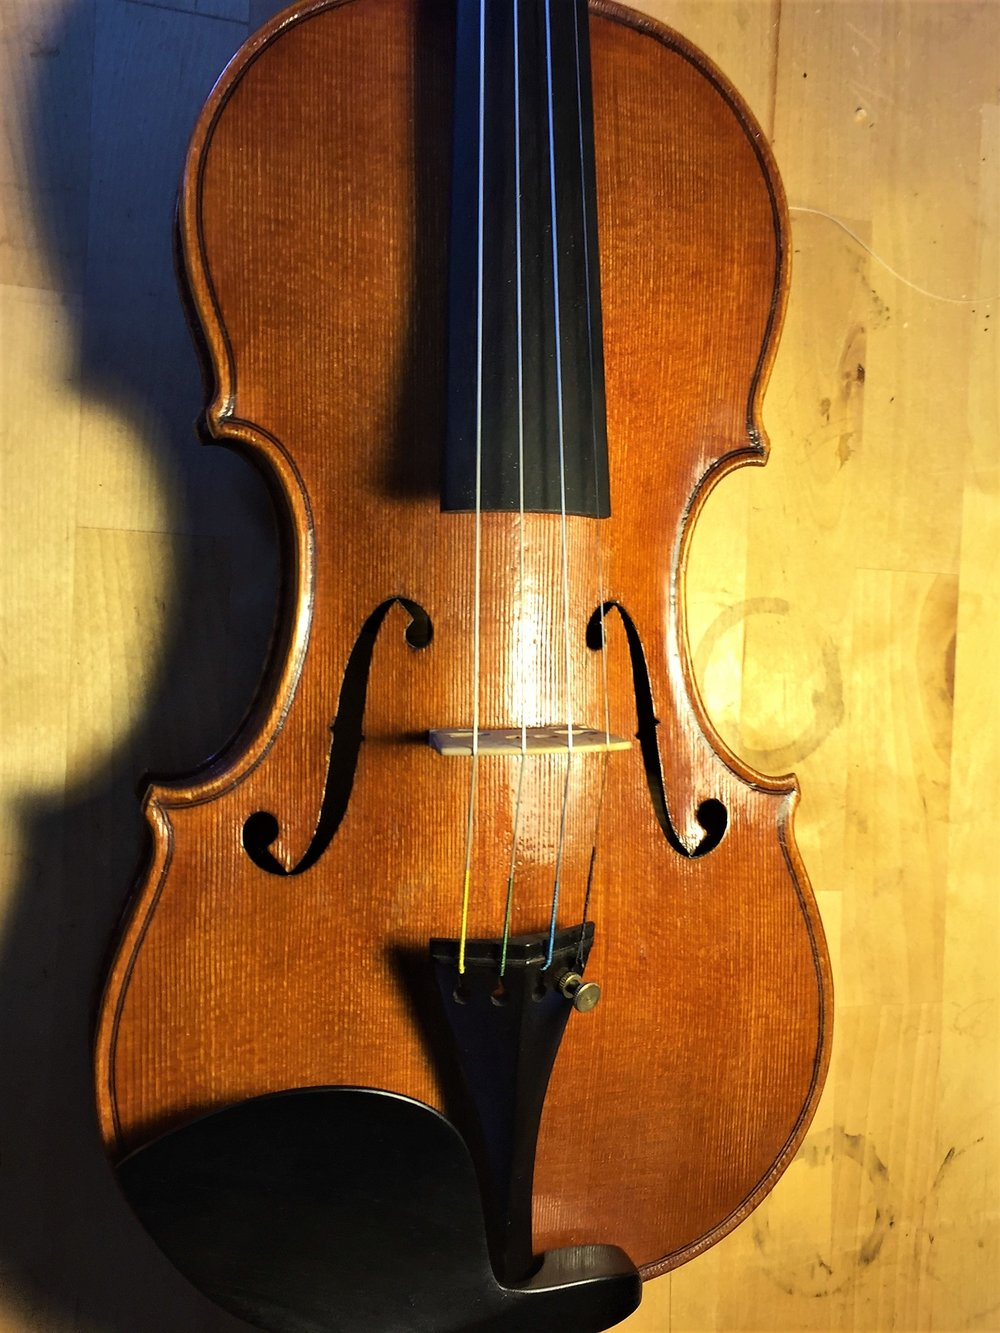 Finished Guarneri model